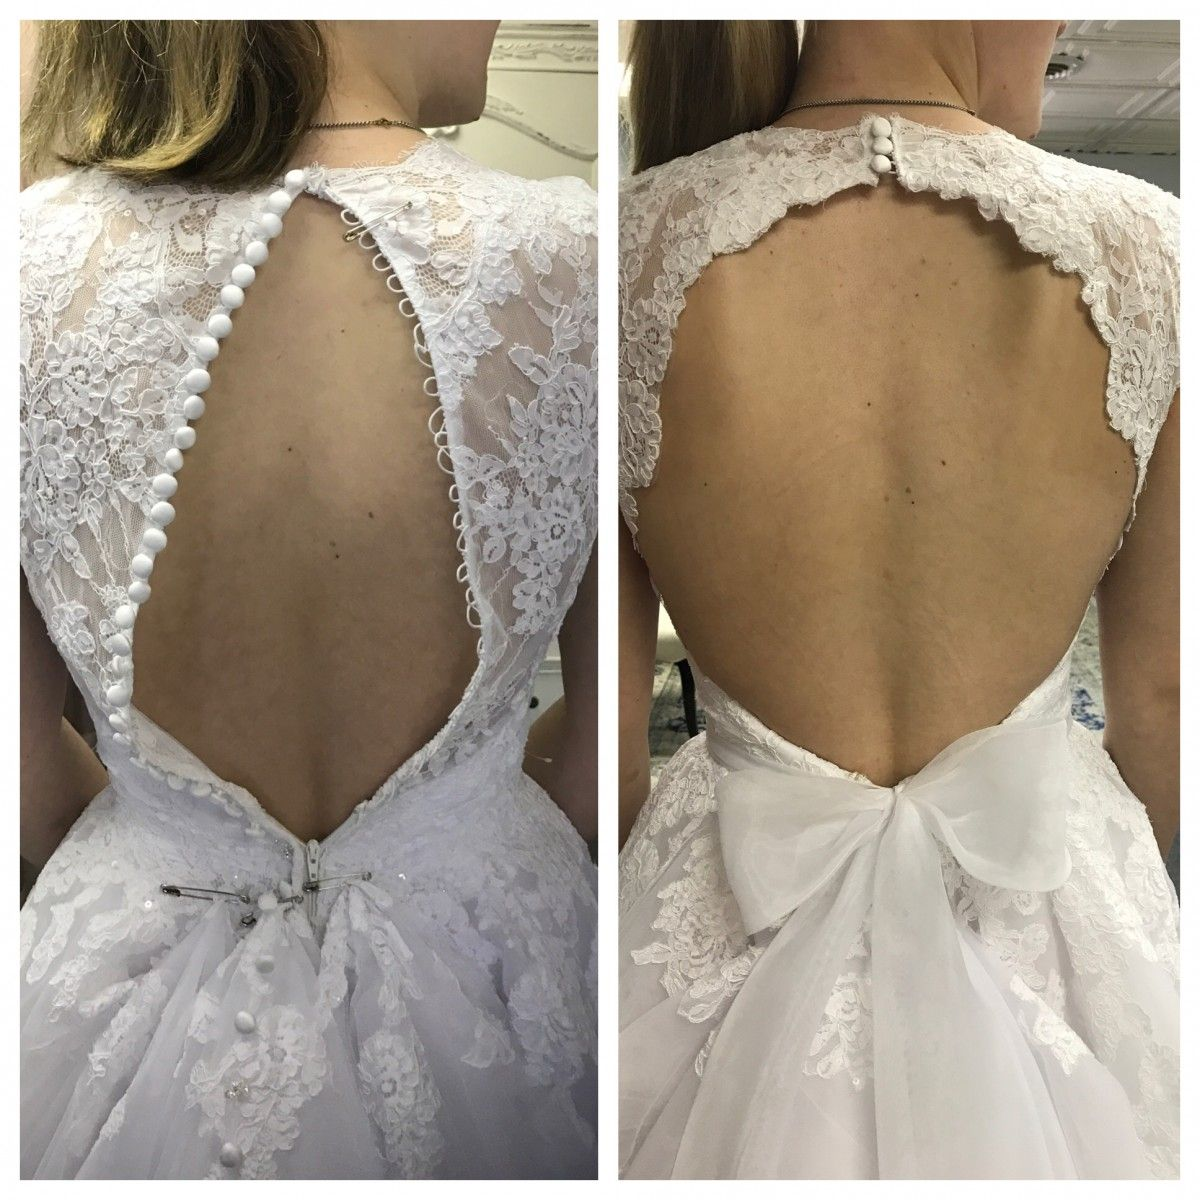 Wedding Dress Too Small After Alterations In 2020 Dresses Wedding Dresses Wedding Dress Alterations